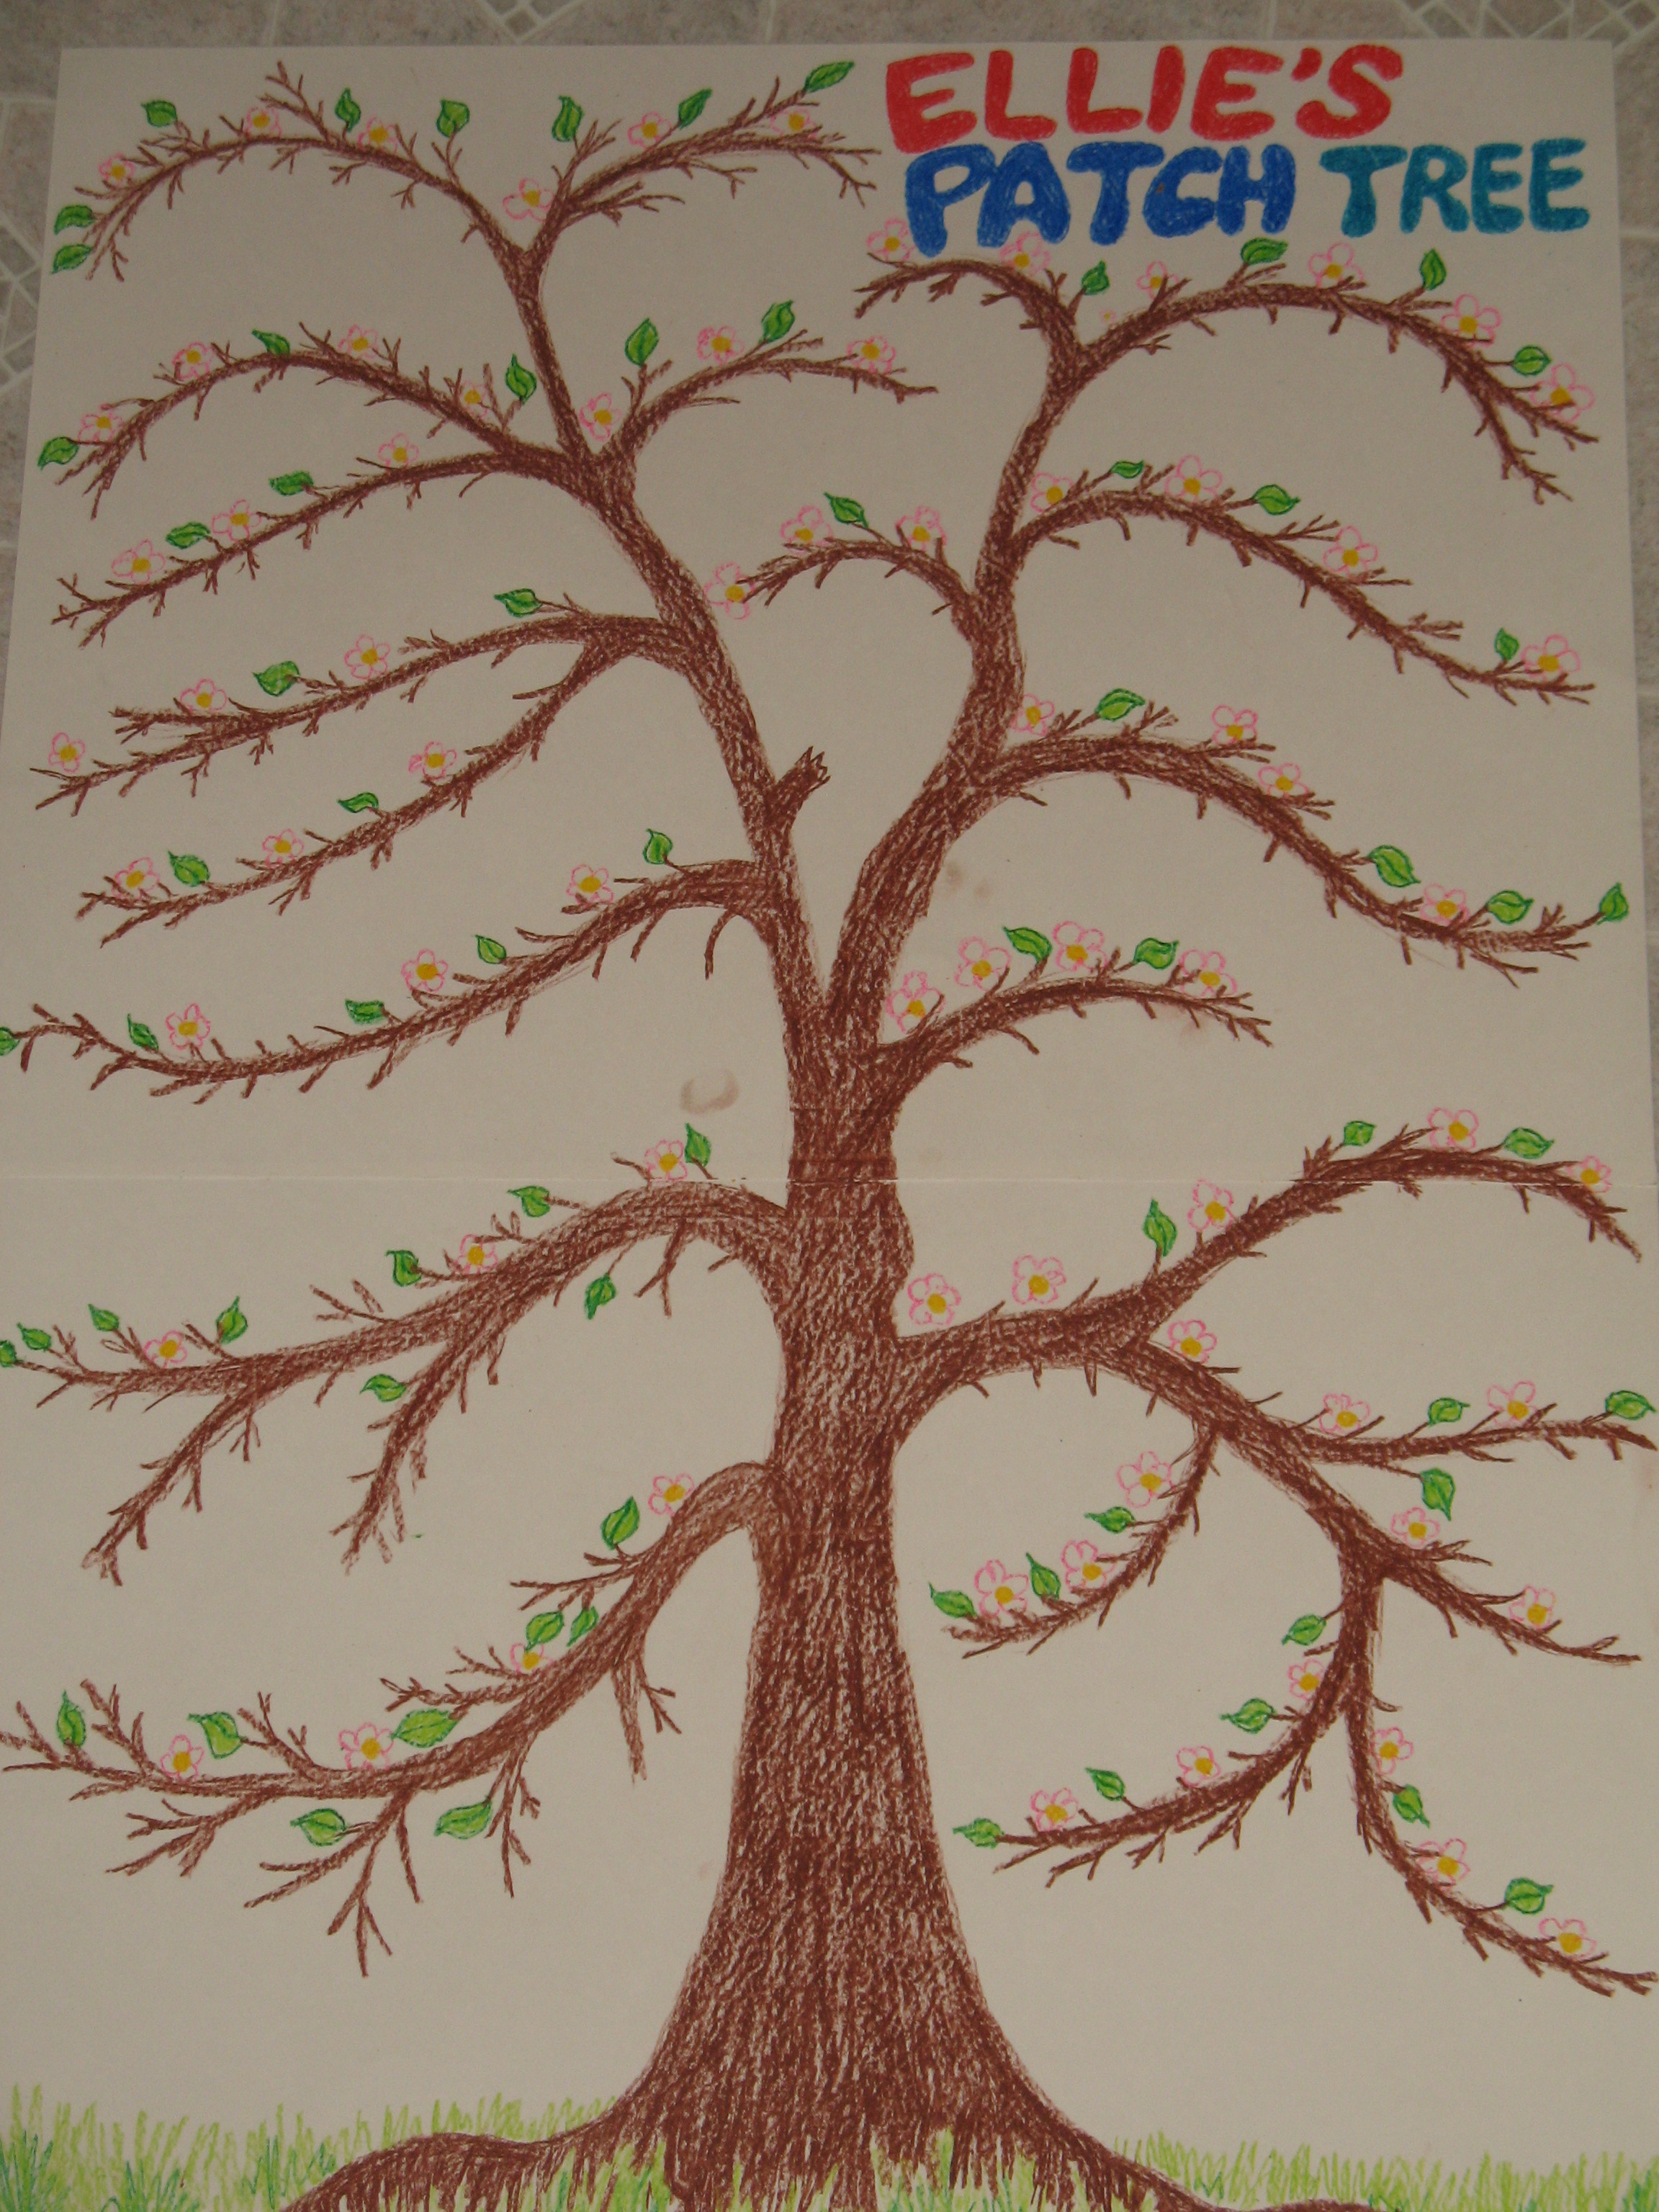 Patch tree